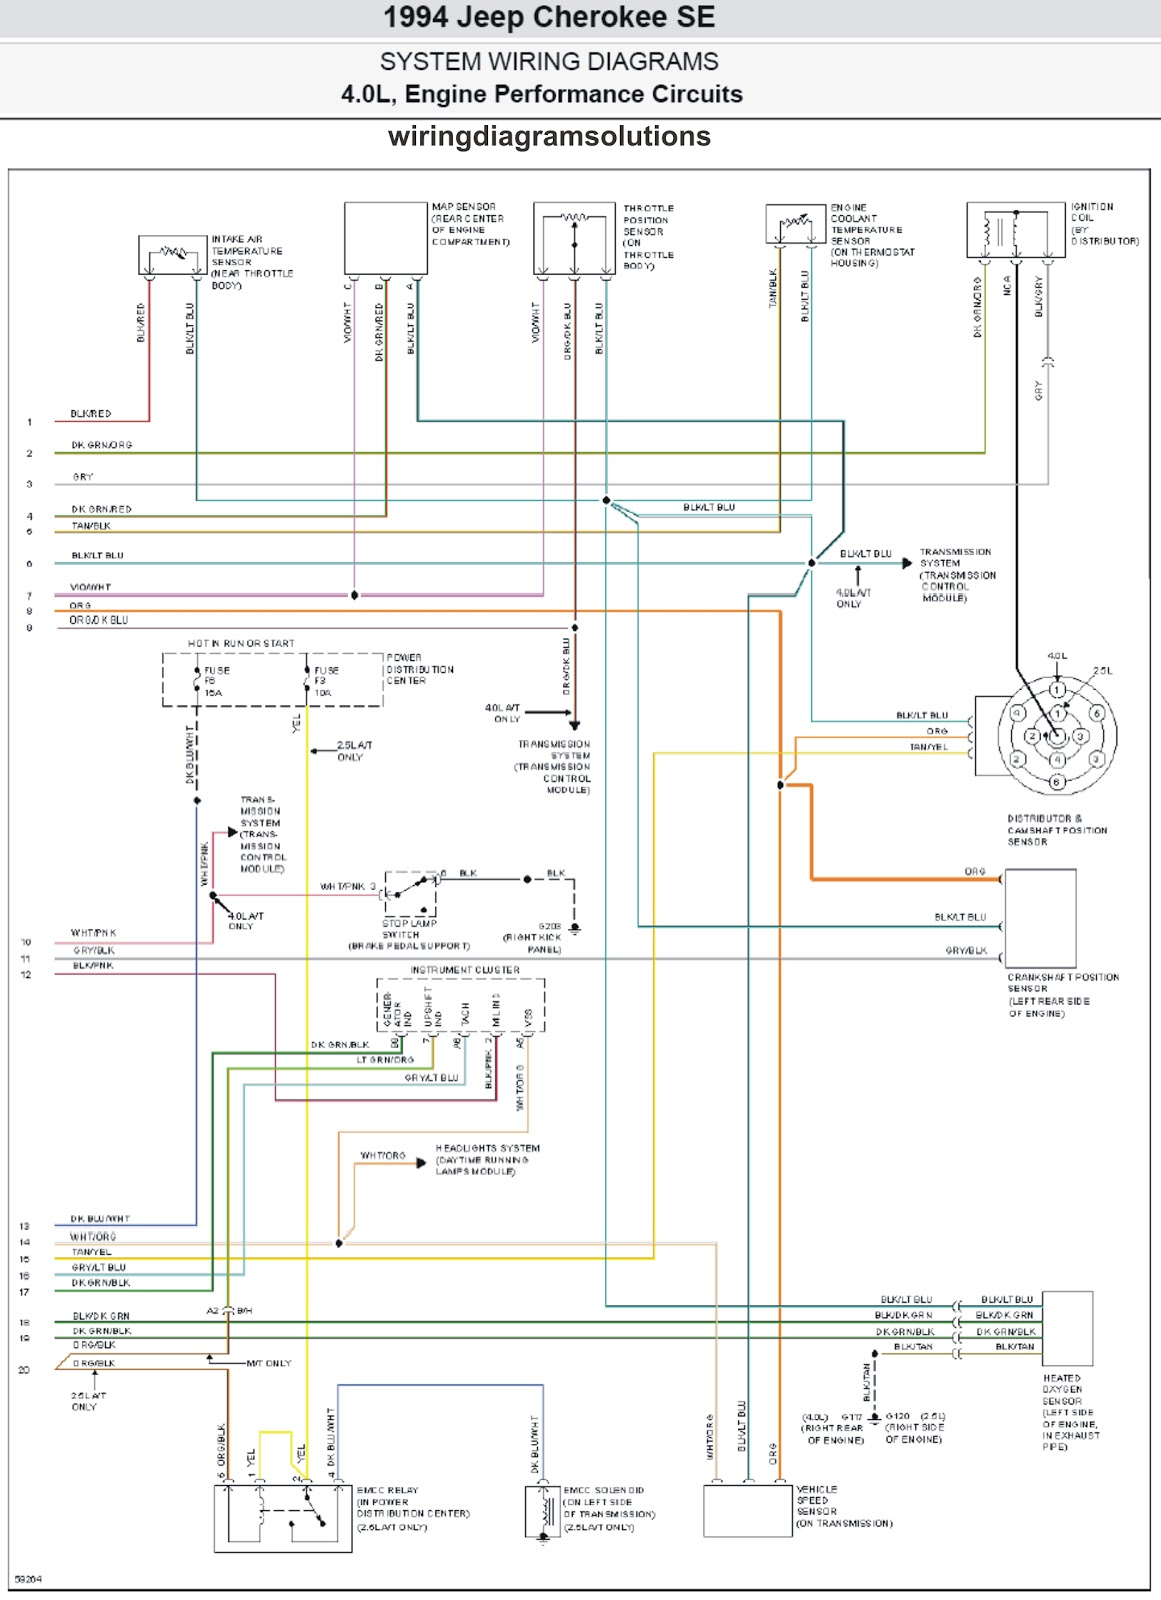 1994 Ford Ranger 2 3 Engine Diagram Wiring Library 2008 Jeep Compass Radio May 2011 Schematic Diagrams Solutions Fusion